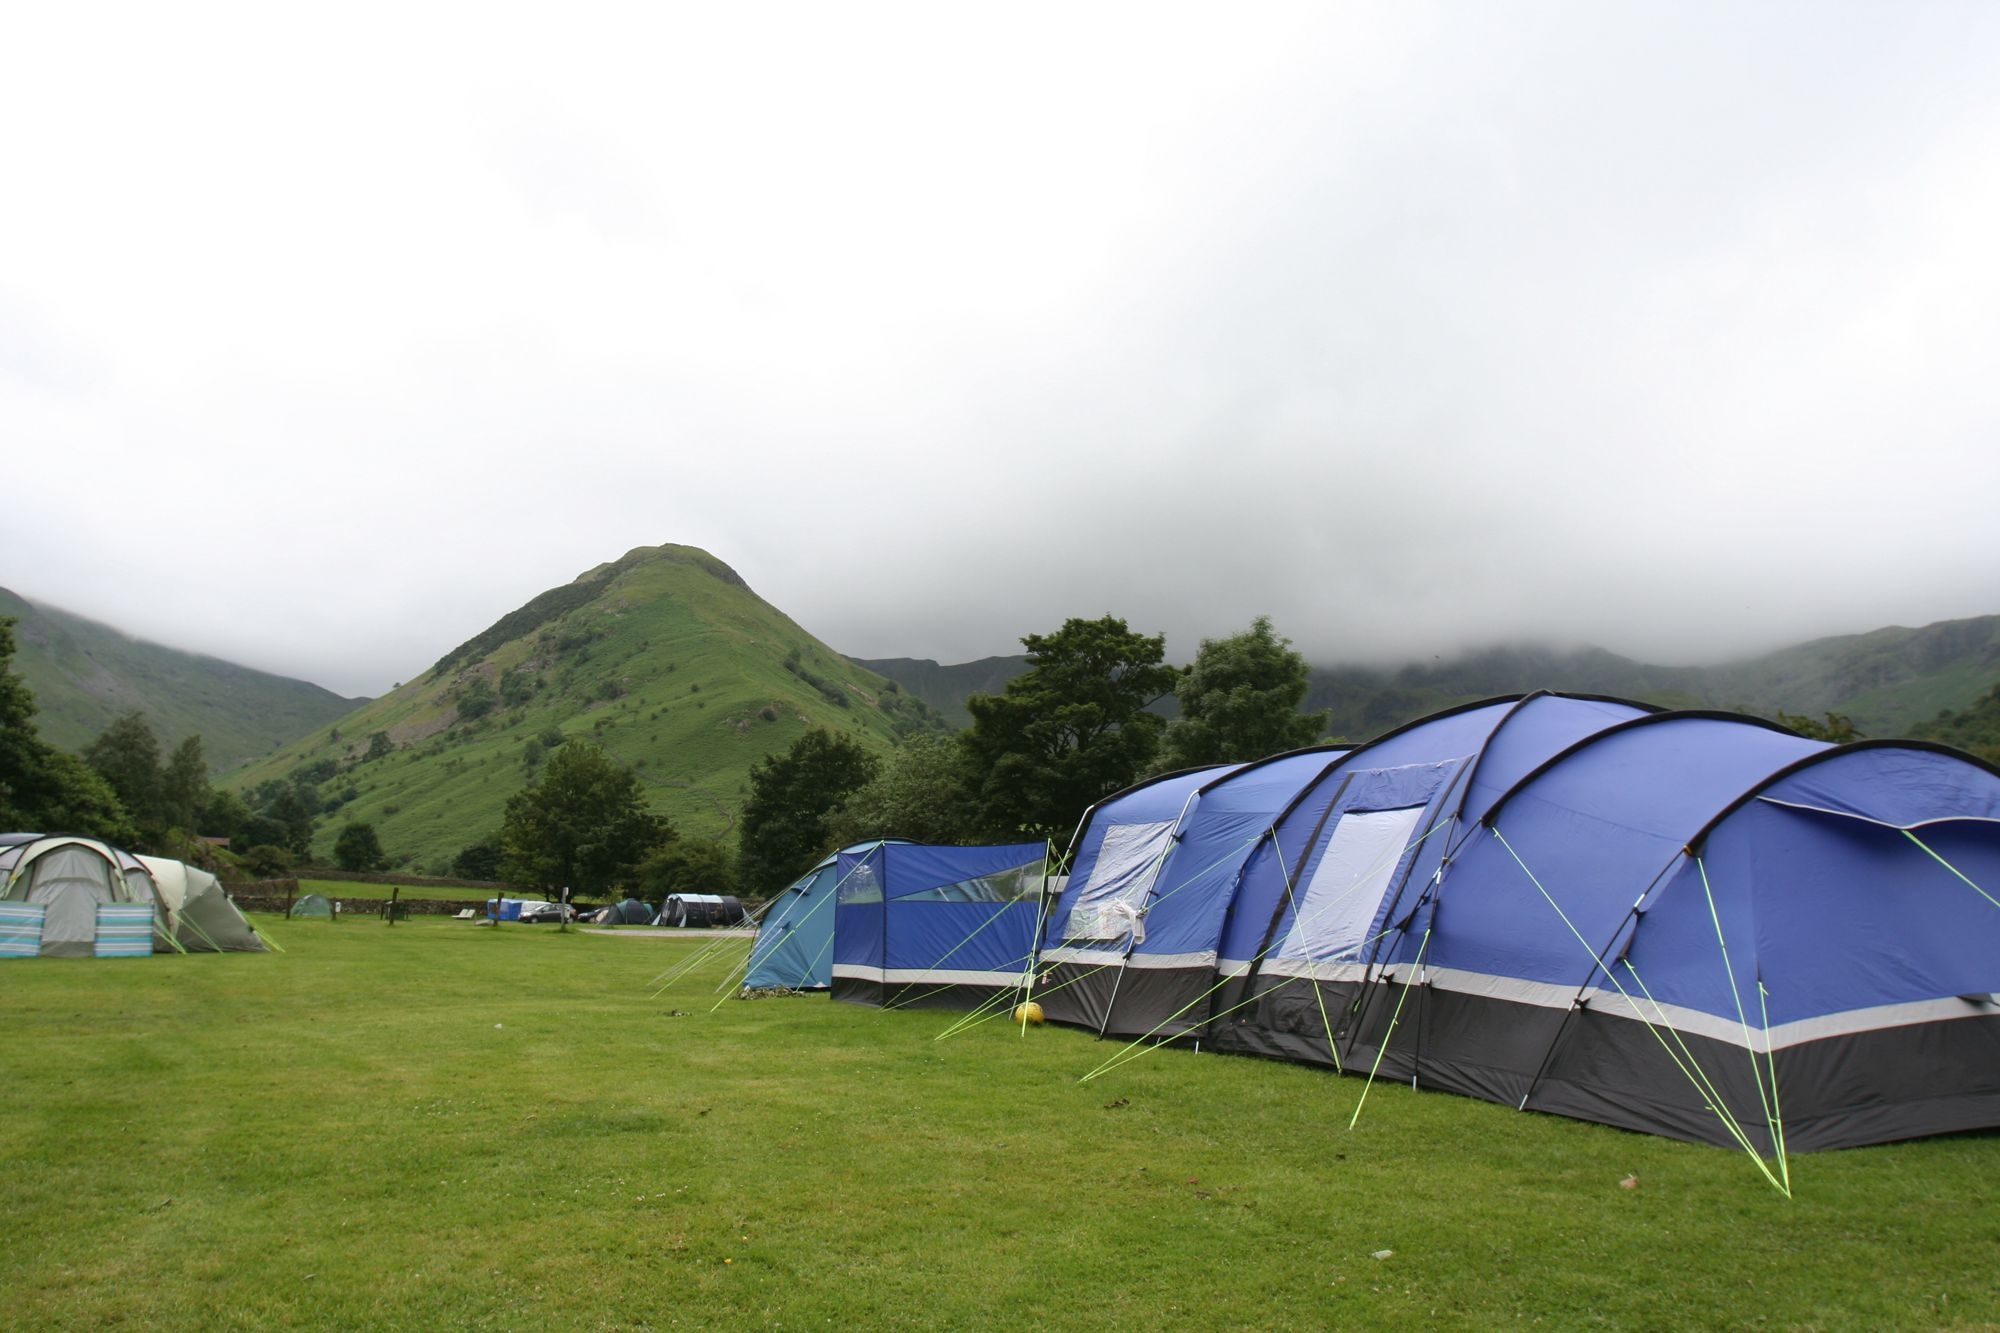 Some of the best scenery the Lake District has to offer.